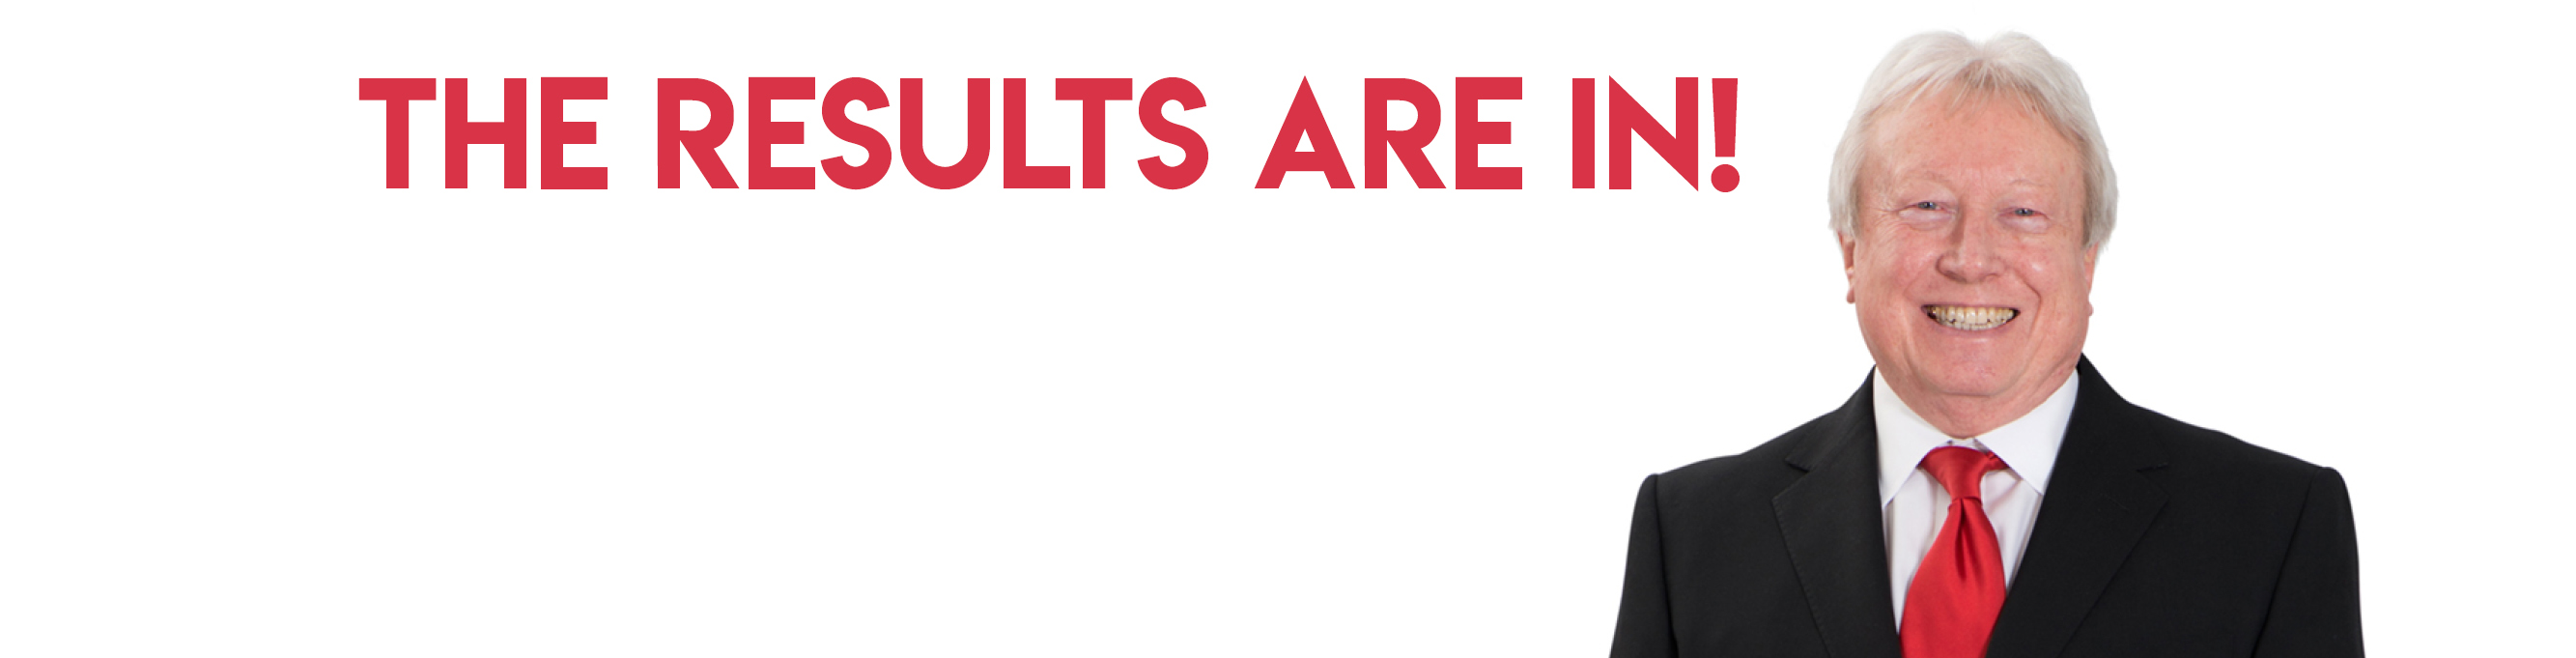 TRUSTEE BOARD AND COUNCIL ELECTION RESULTS 2018